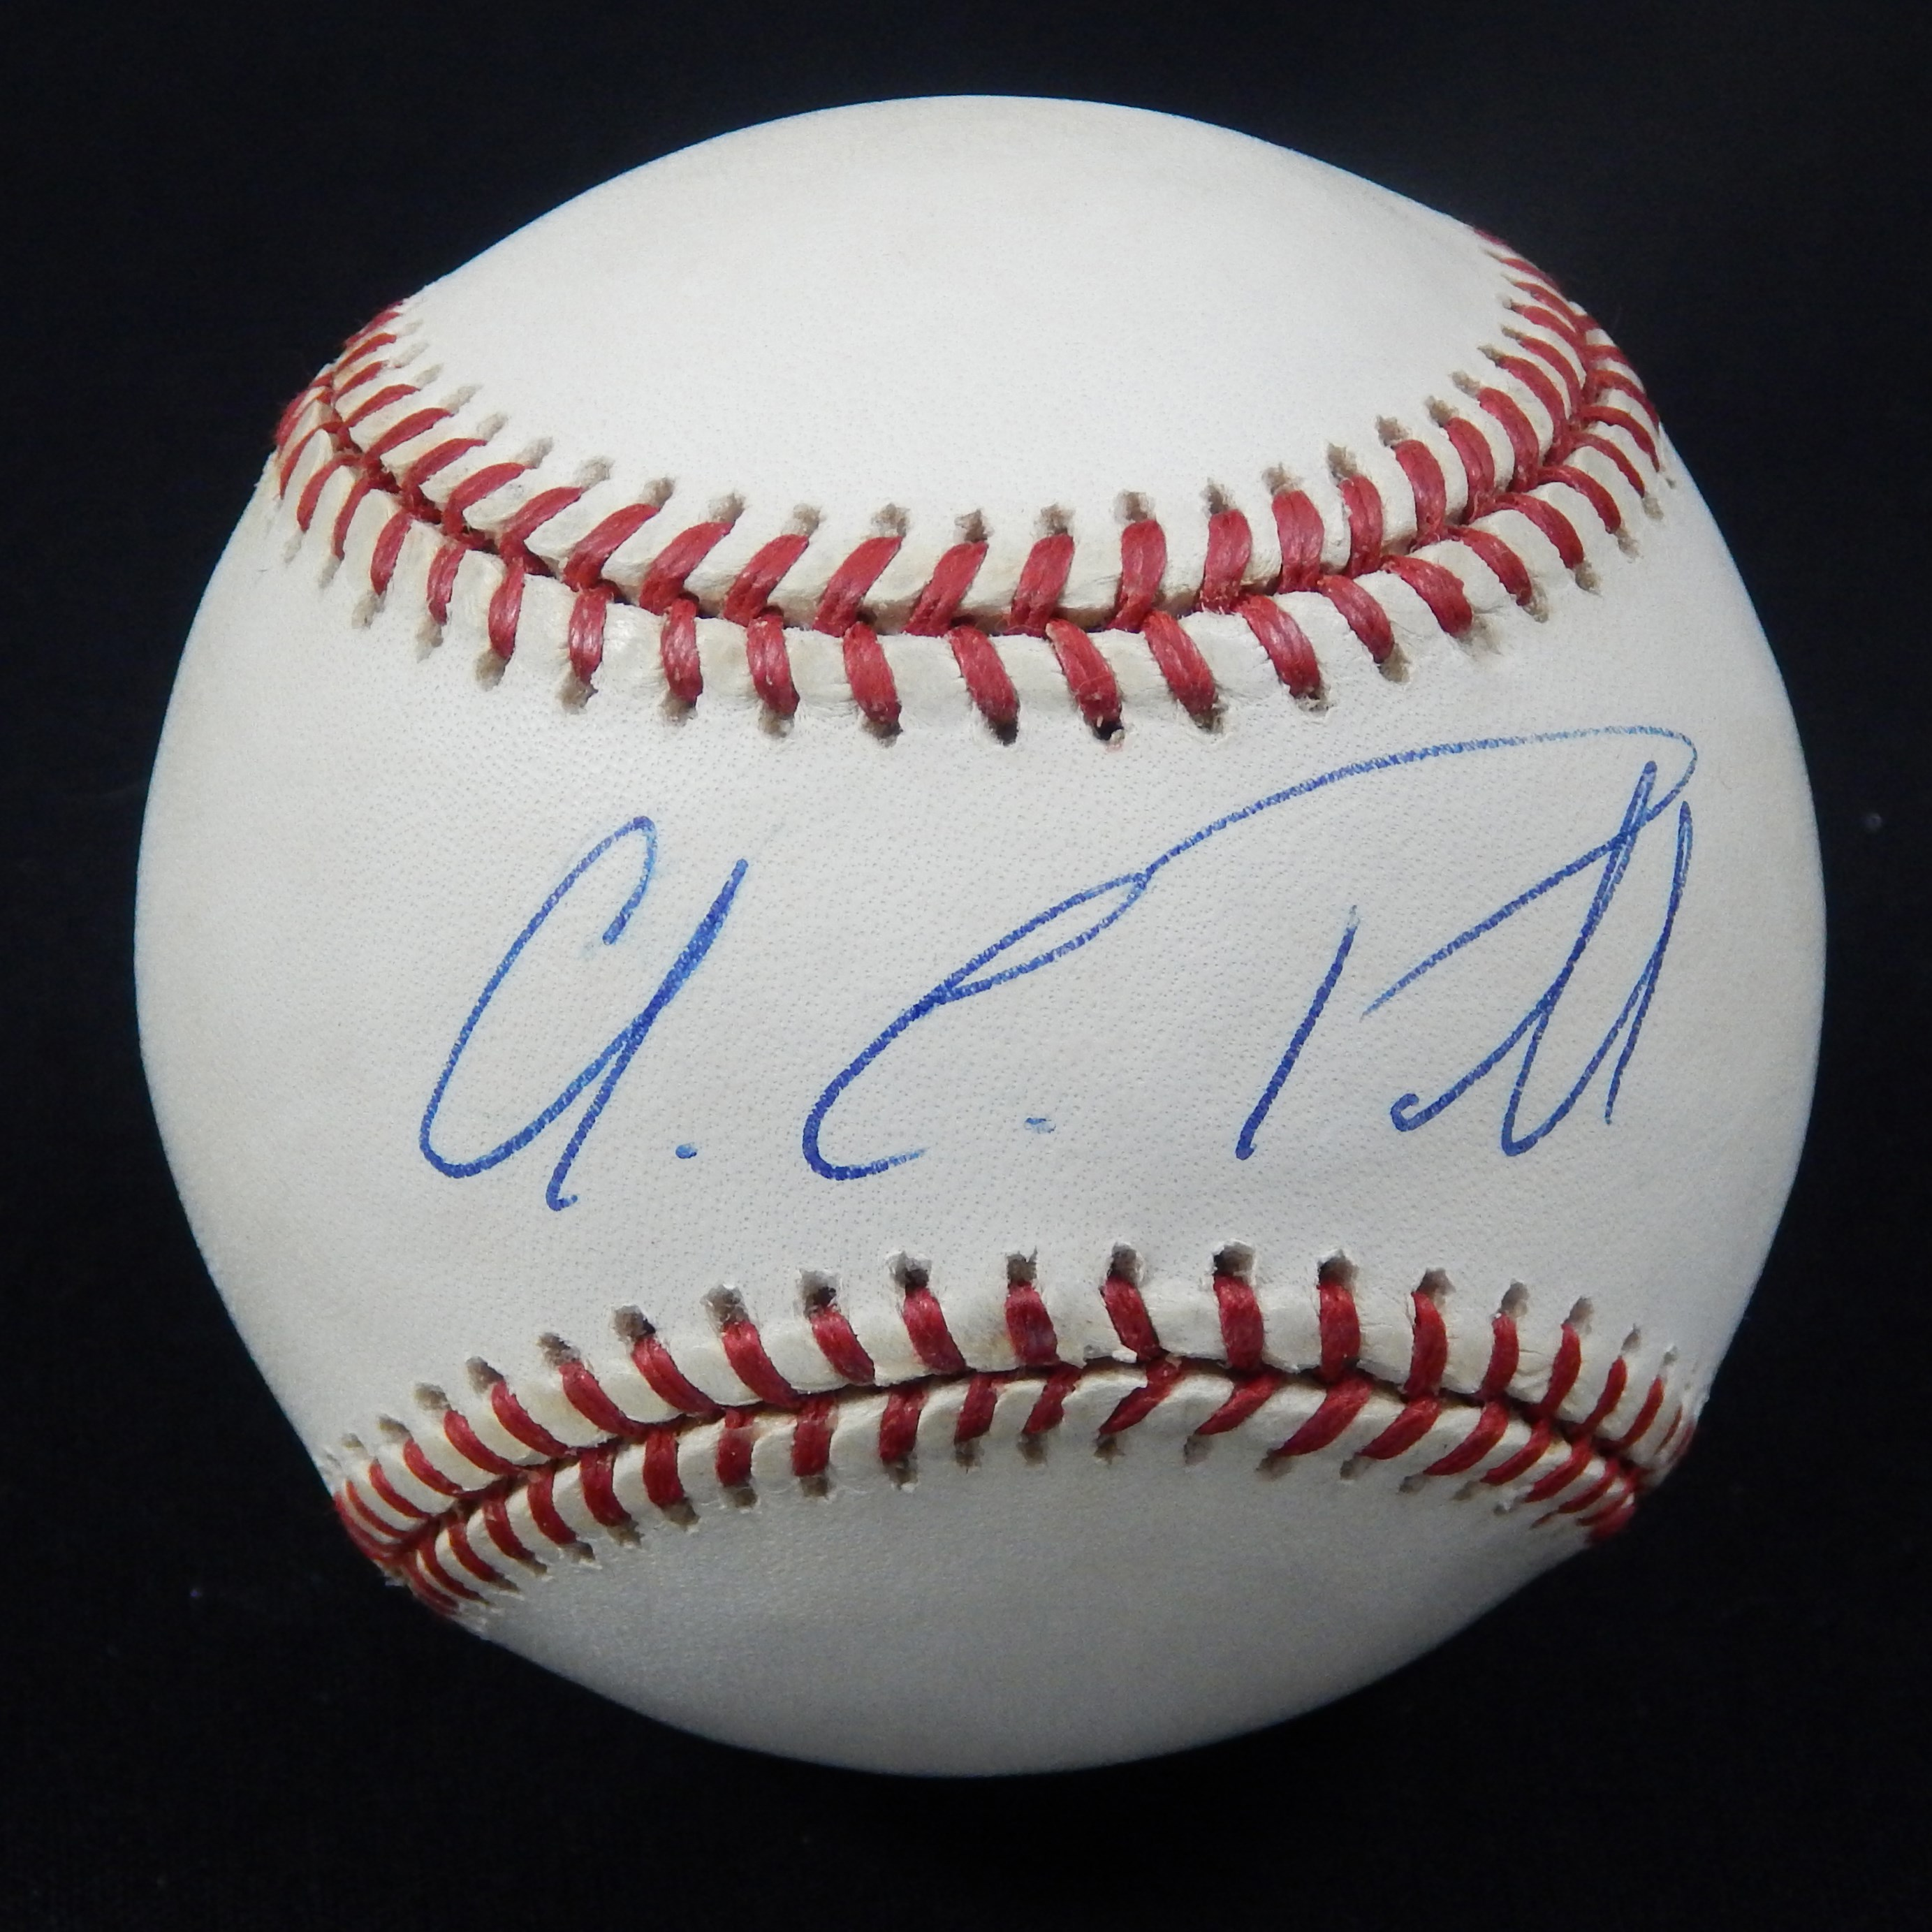 Single Signed Baseballs - Monthly 07-18